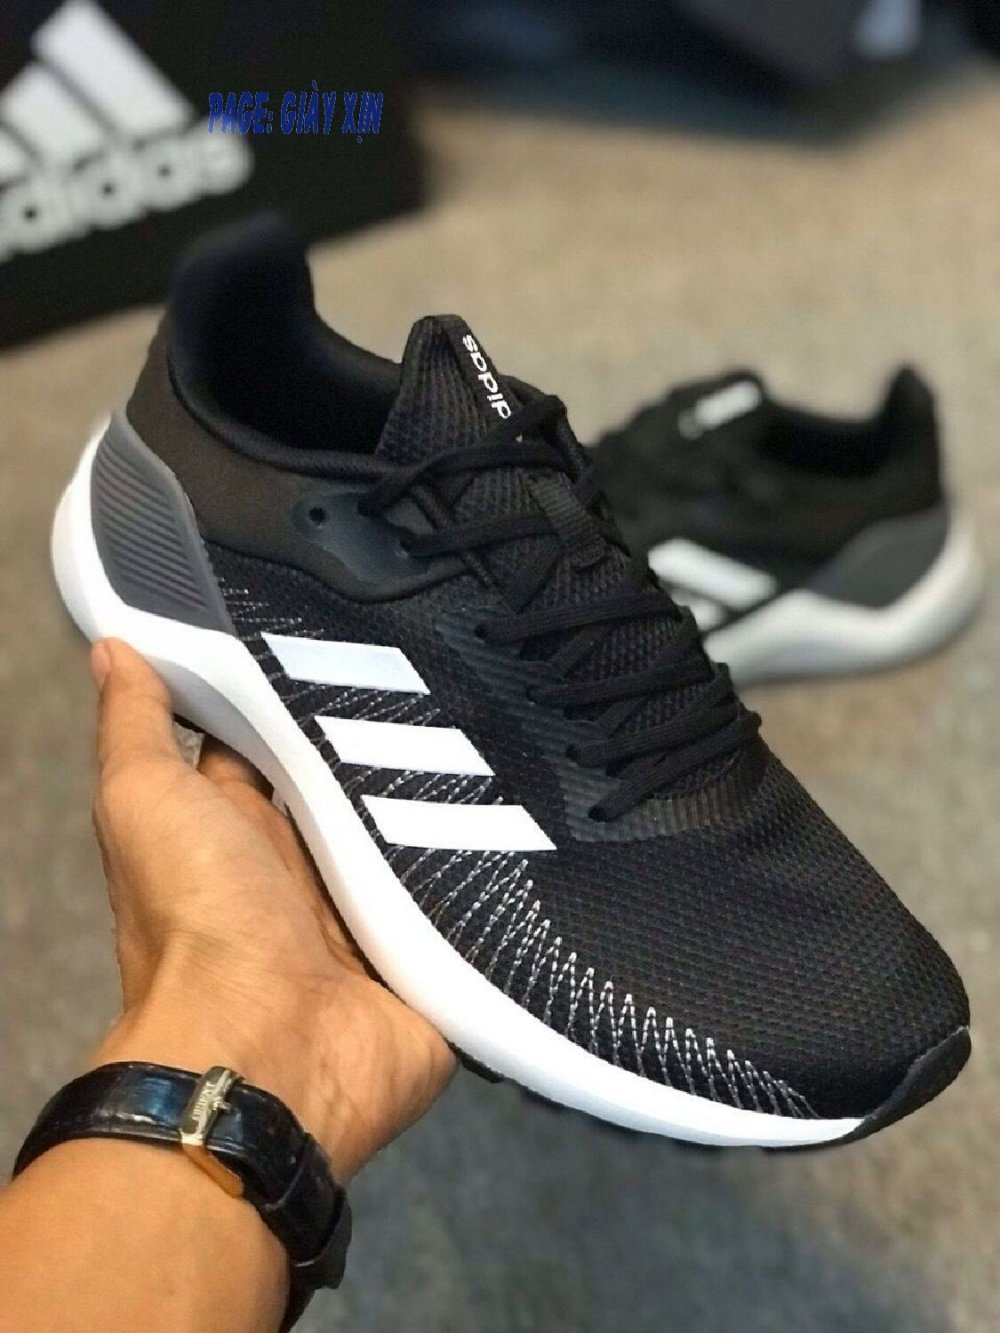 Giày thể thao ADIDAS ALPHABOUNCE CLOUDFOAM (Ảnh 1)